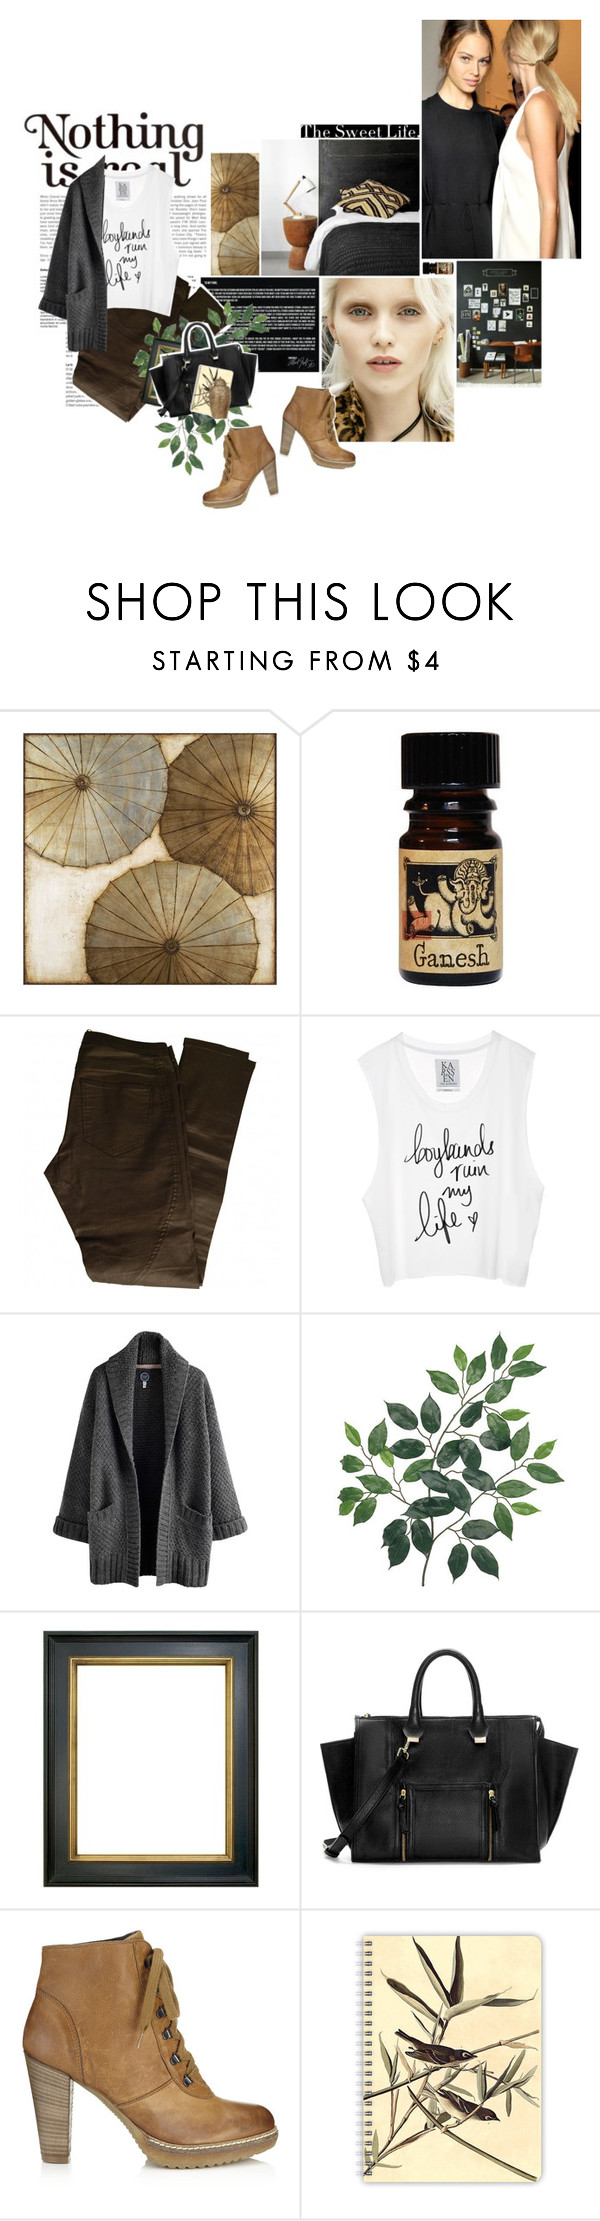 """Don't feel weird about being weird."" by skybluchik89 ❤ liked on Polyvore featuring WALL, Elie Saab, Joules, Zara and Jigsaw"